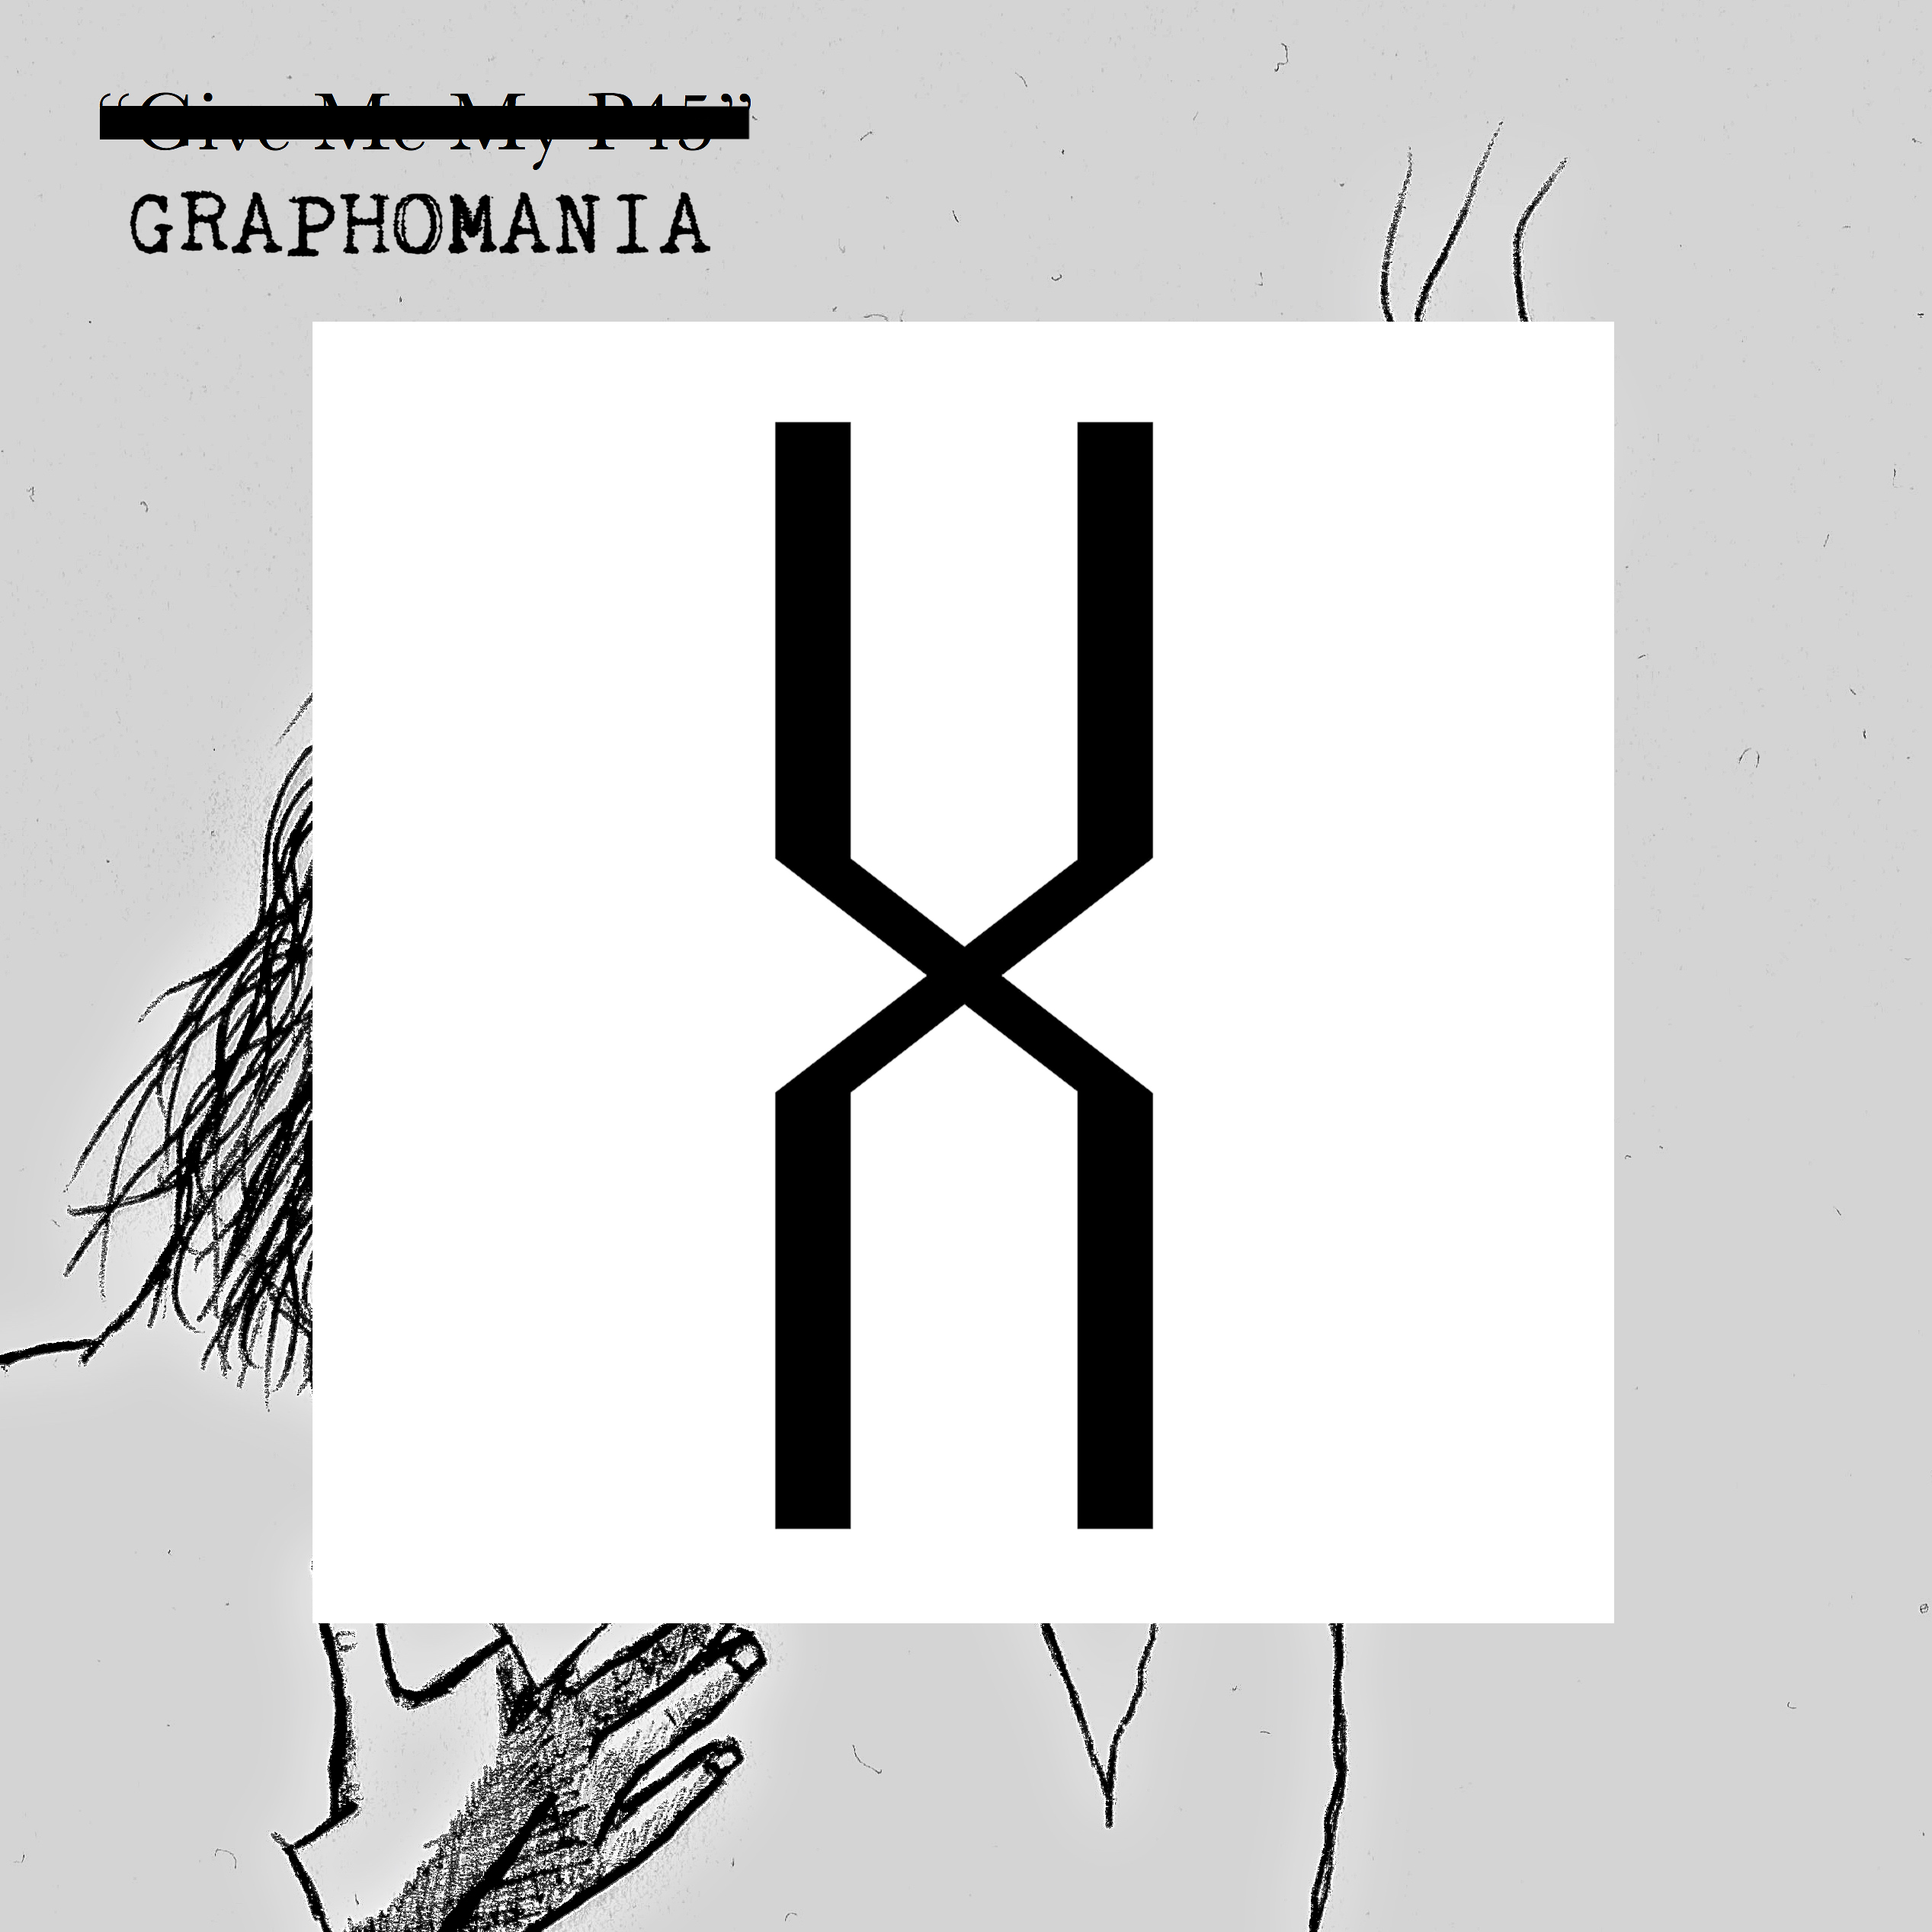 Graphomania s&l fashions dress collection